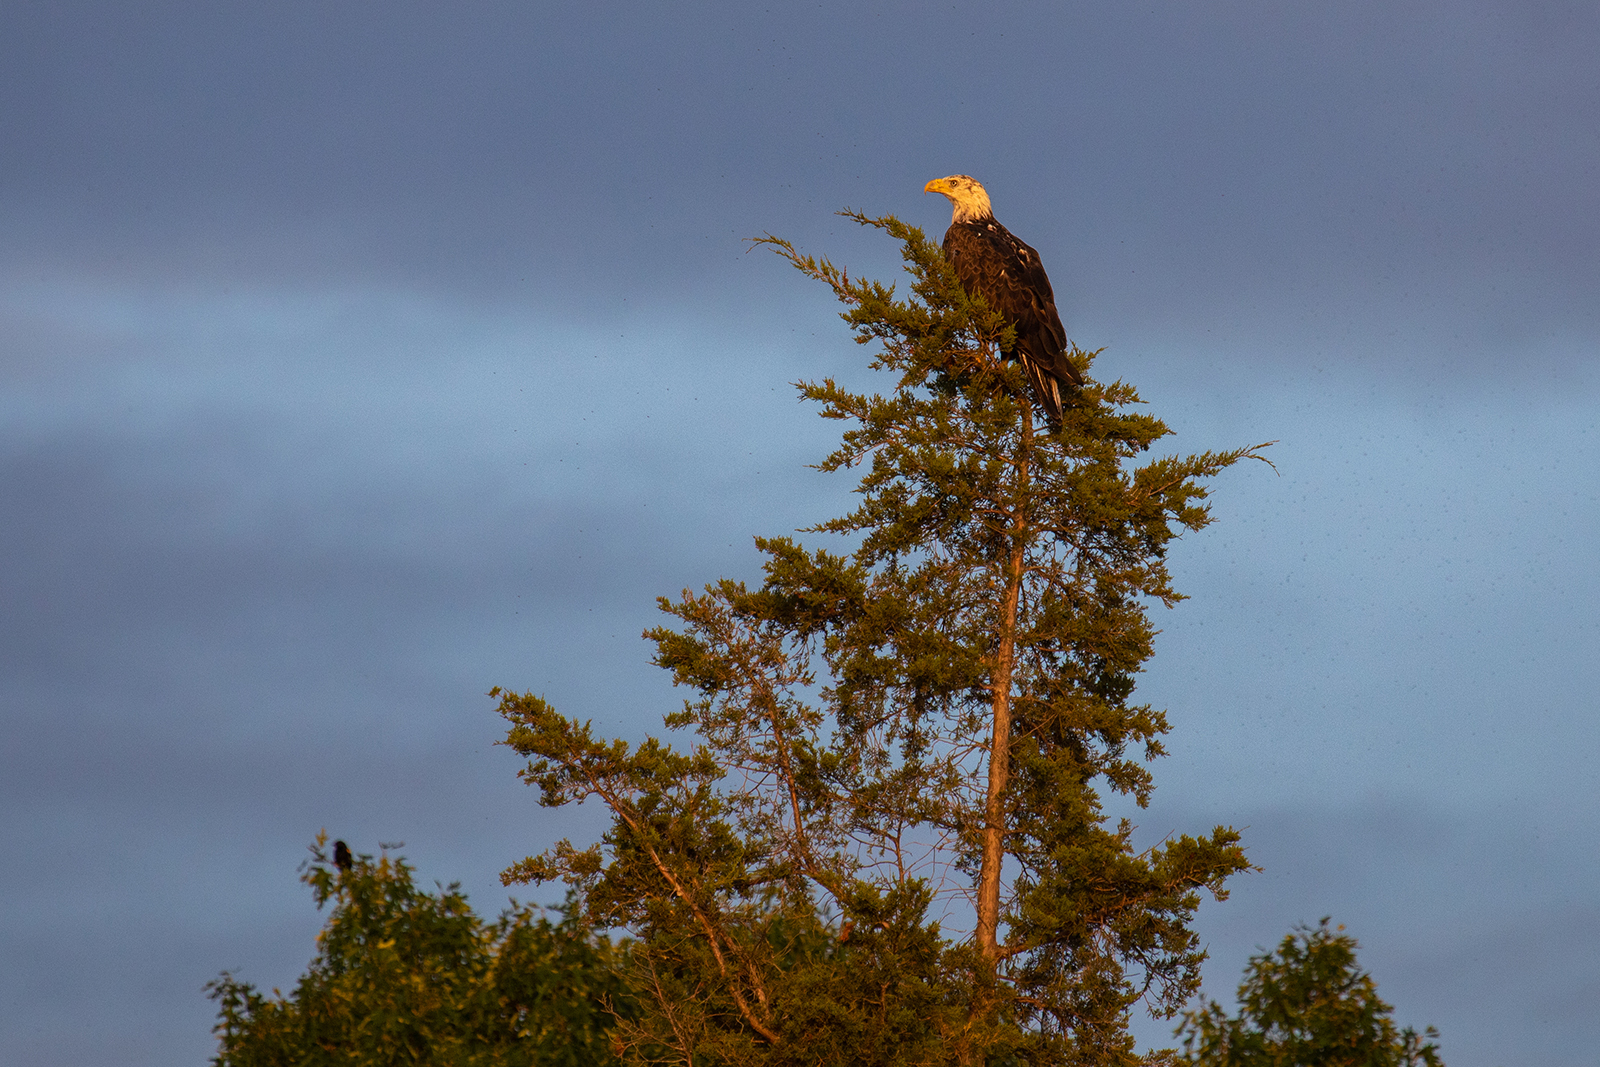 A bald eagle perched on top of a pine tree is tinted orange by the setting sun